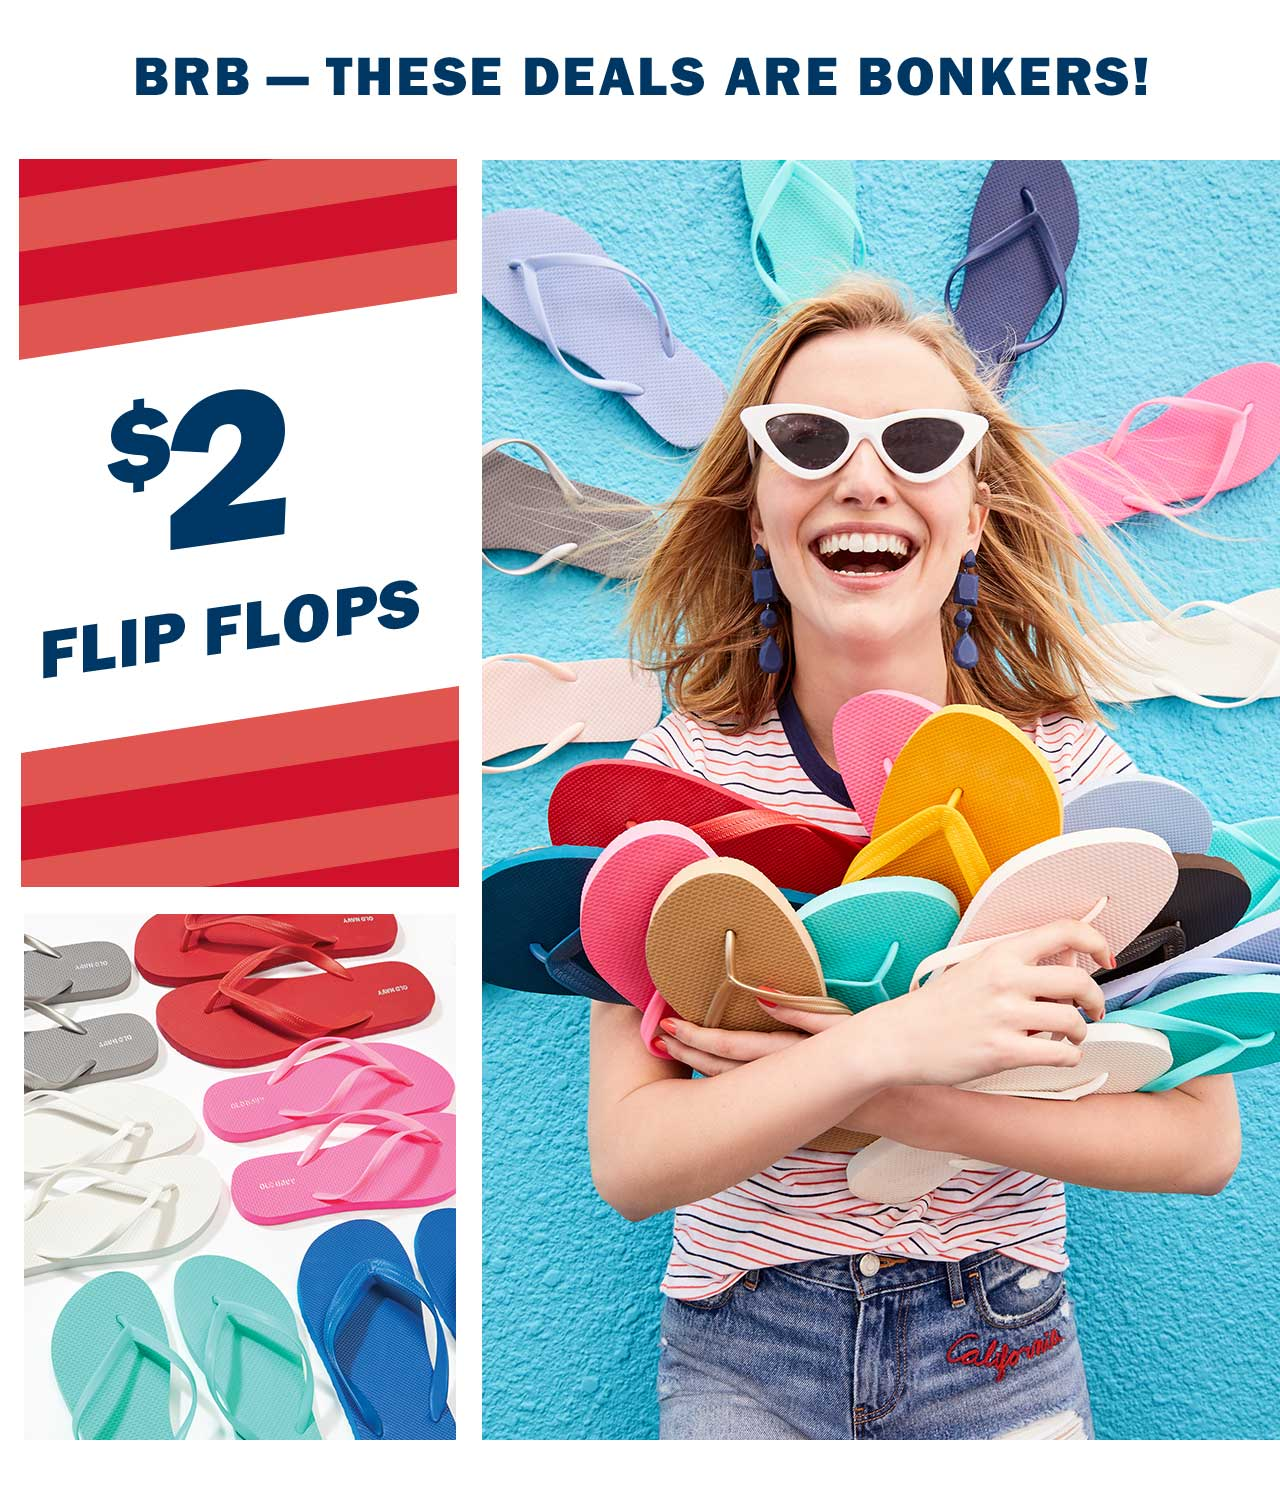 BRB — THESE DEALS ARE BONKERS! | $2 FLIP FLOPS